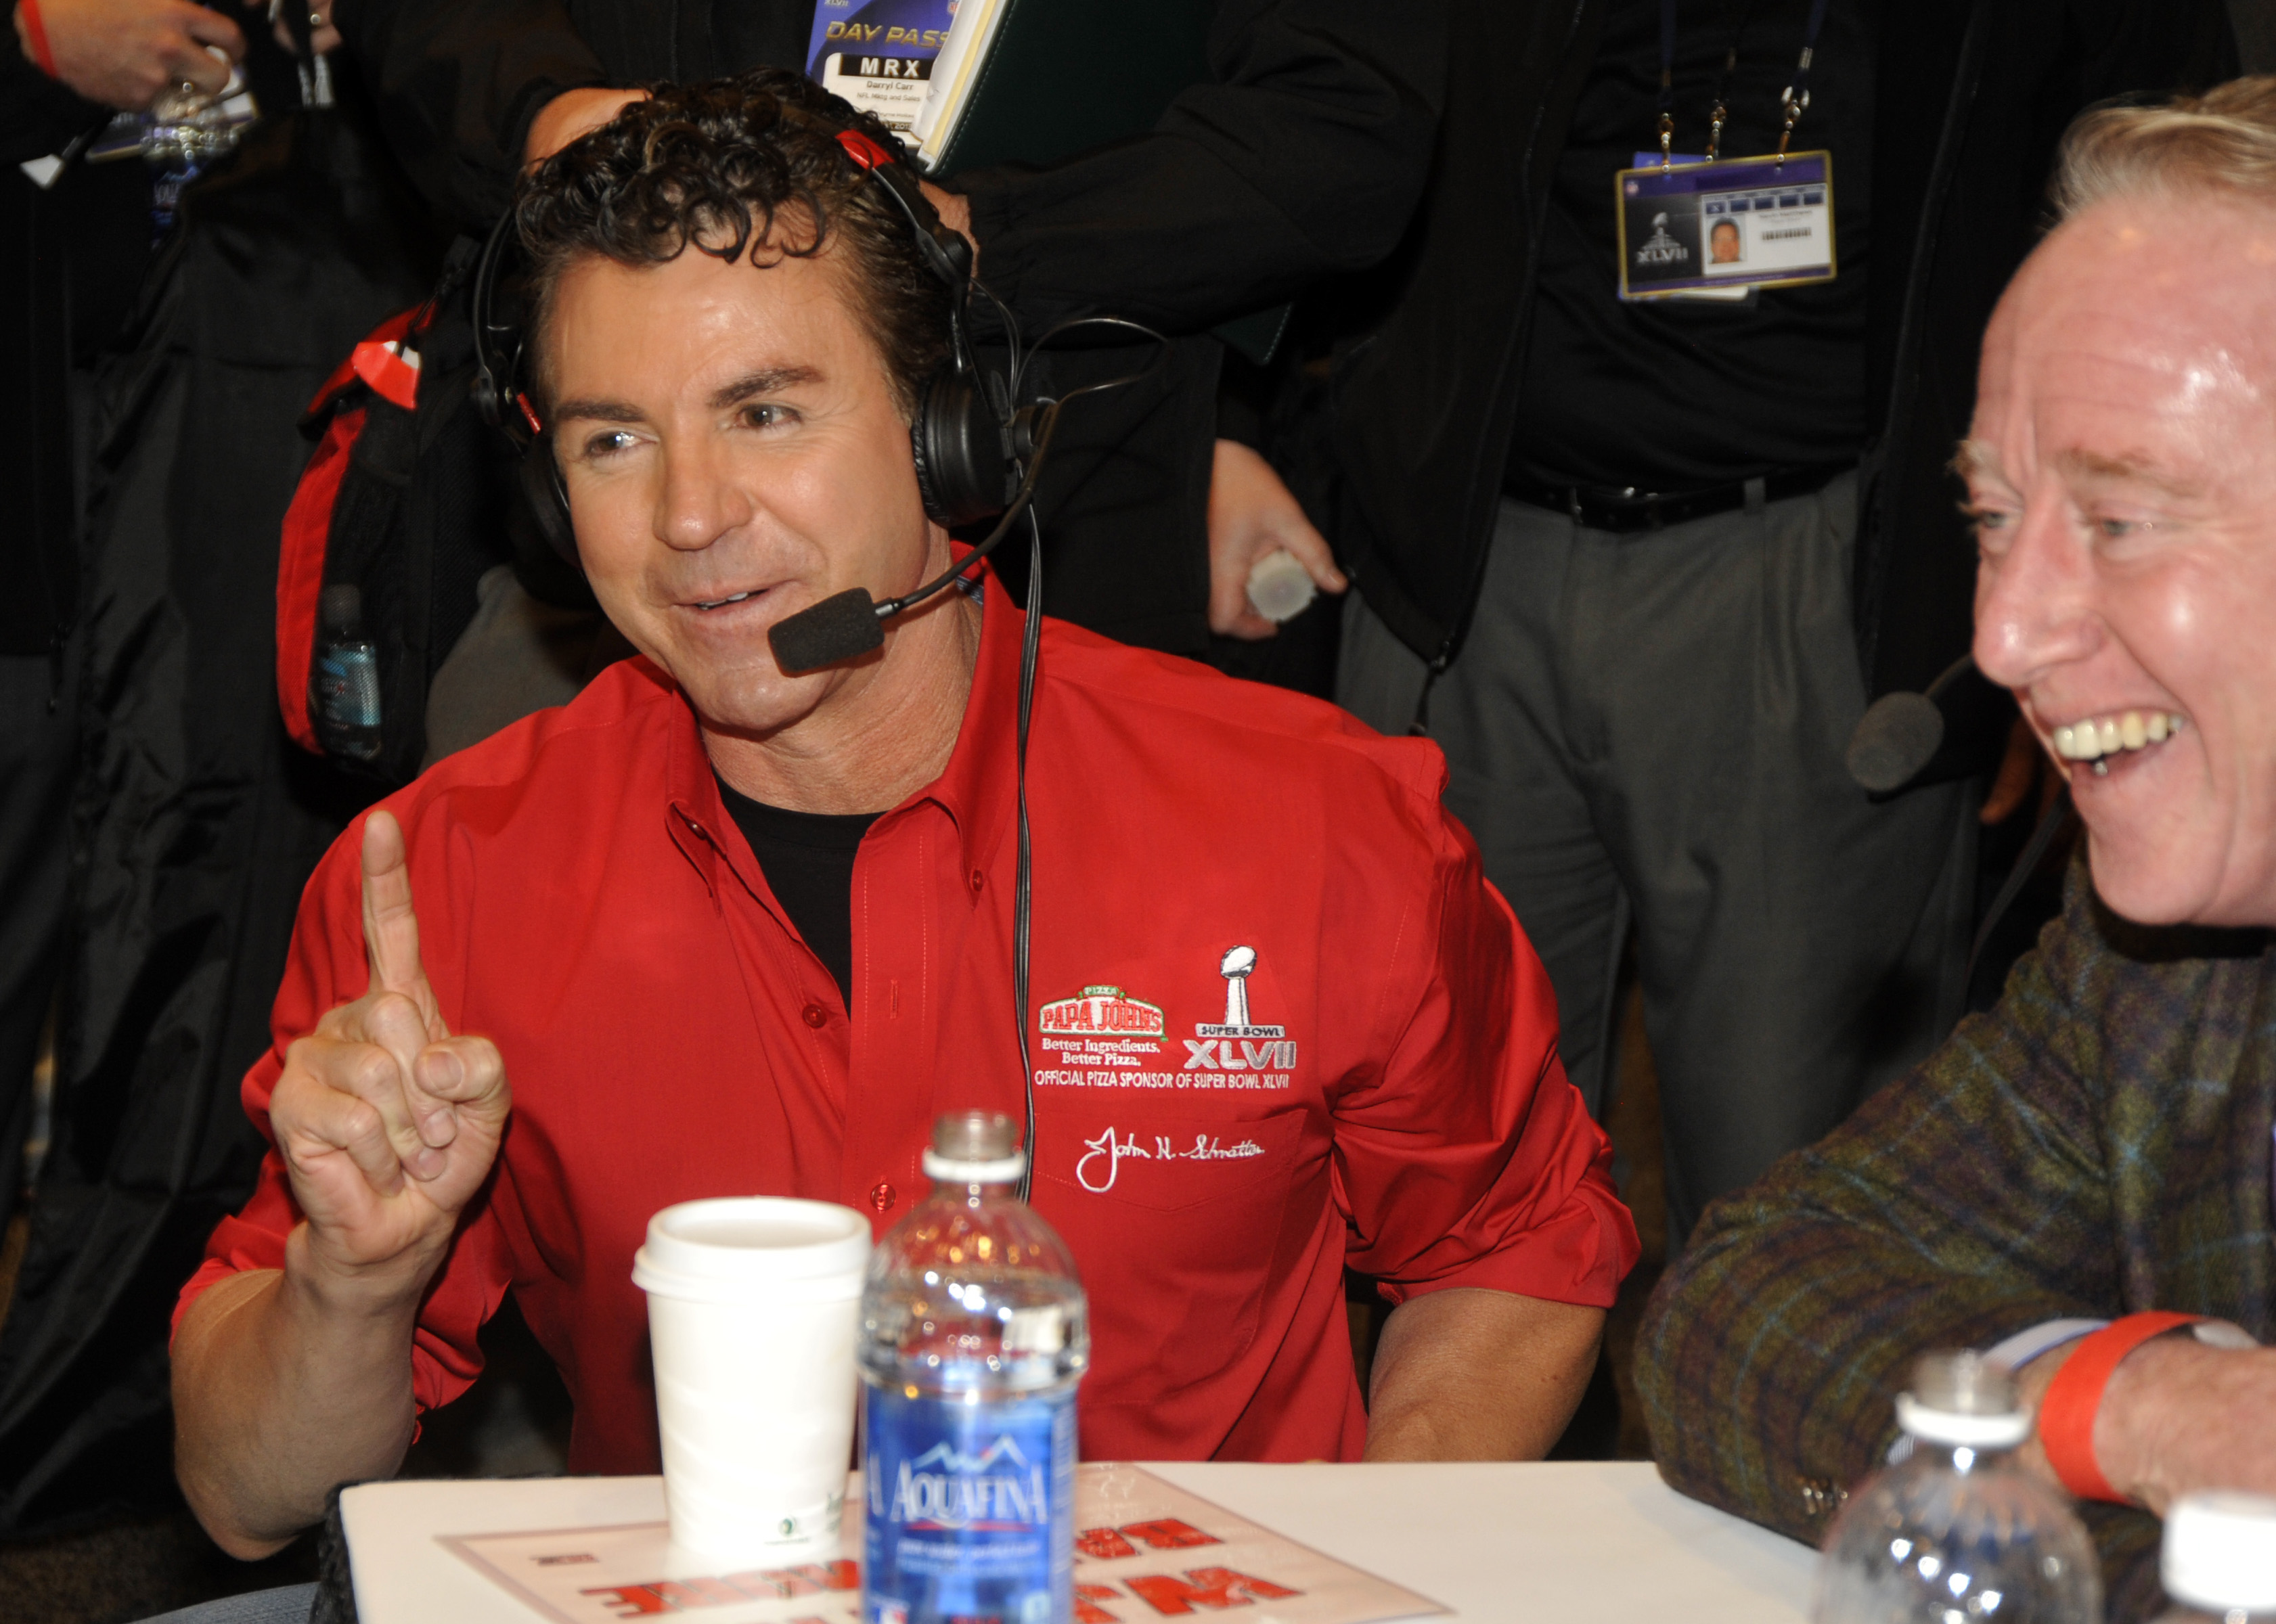 Papa John's Founder, Chairman and CEO John Schnatter, left, and NFL legend Archie Manning, right, share a laugh at the NFL Media Center, promoting Papa John's Super Bowl XLVII Coin Toss Experience, in New Orleans.